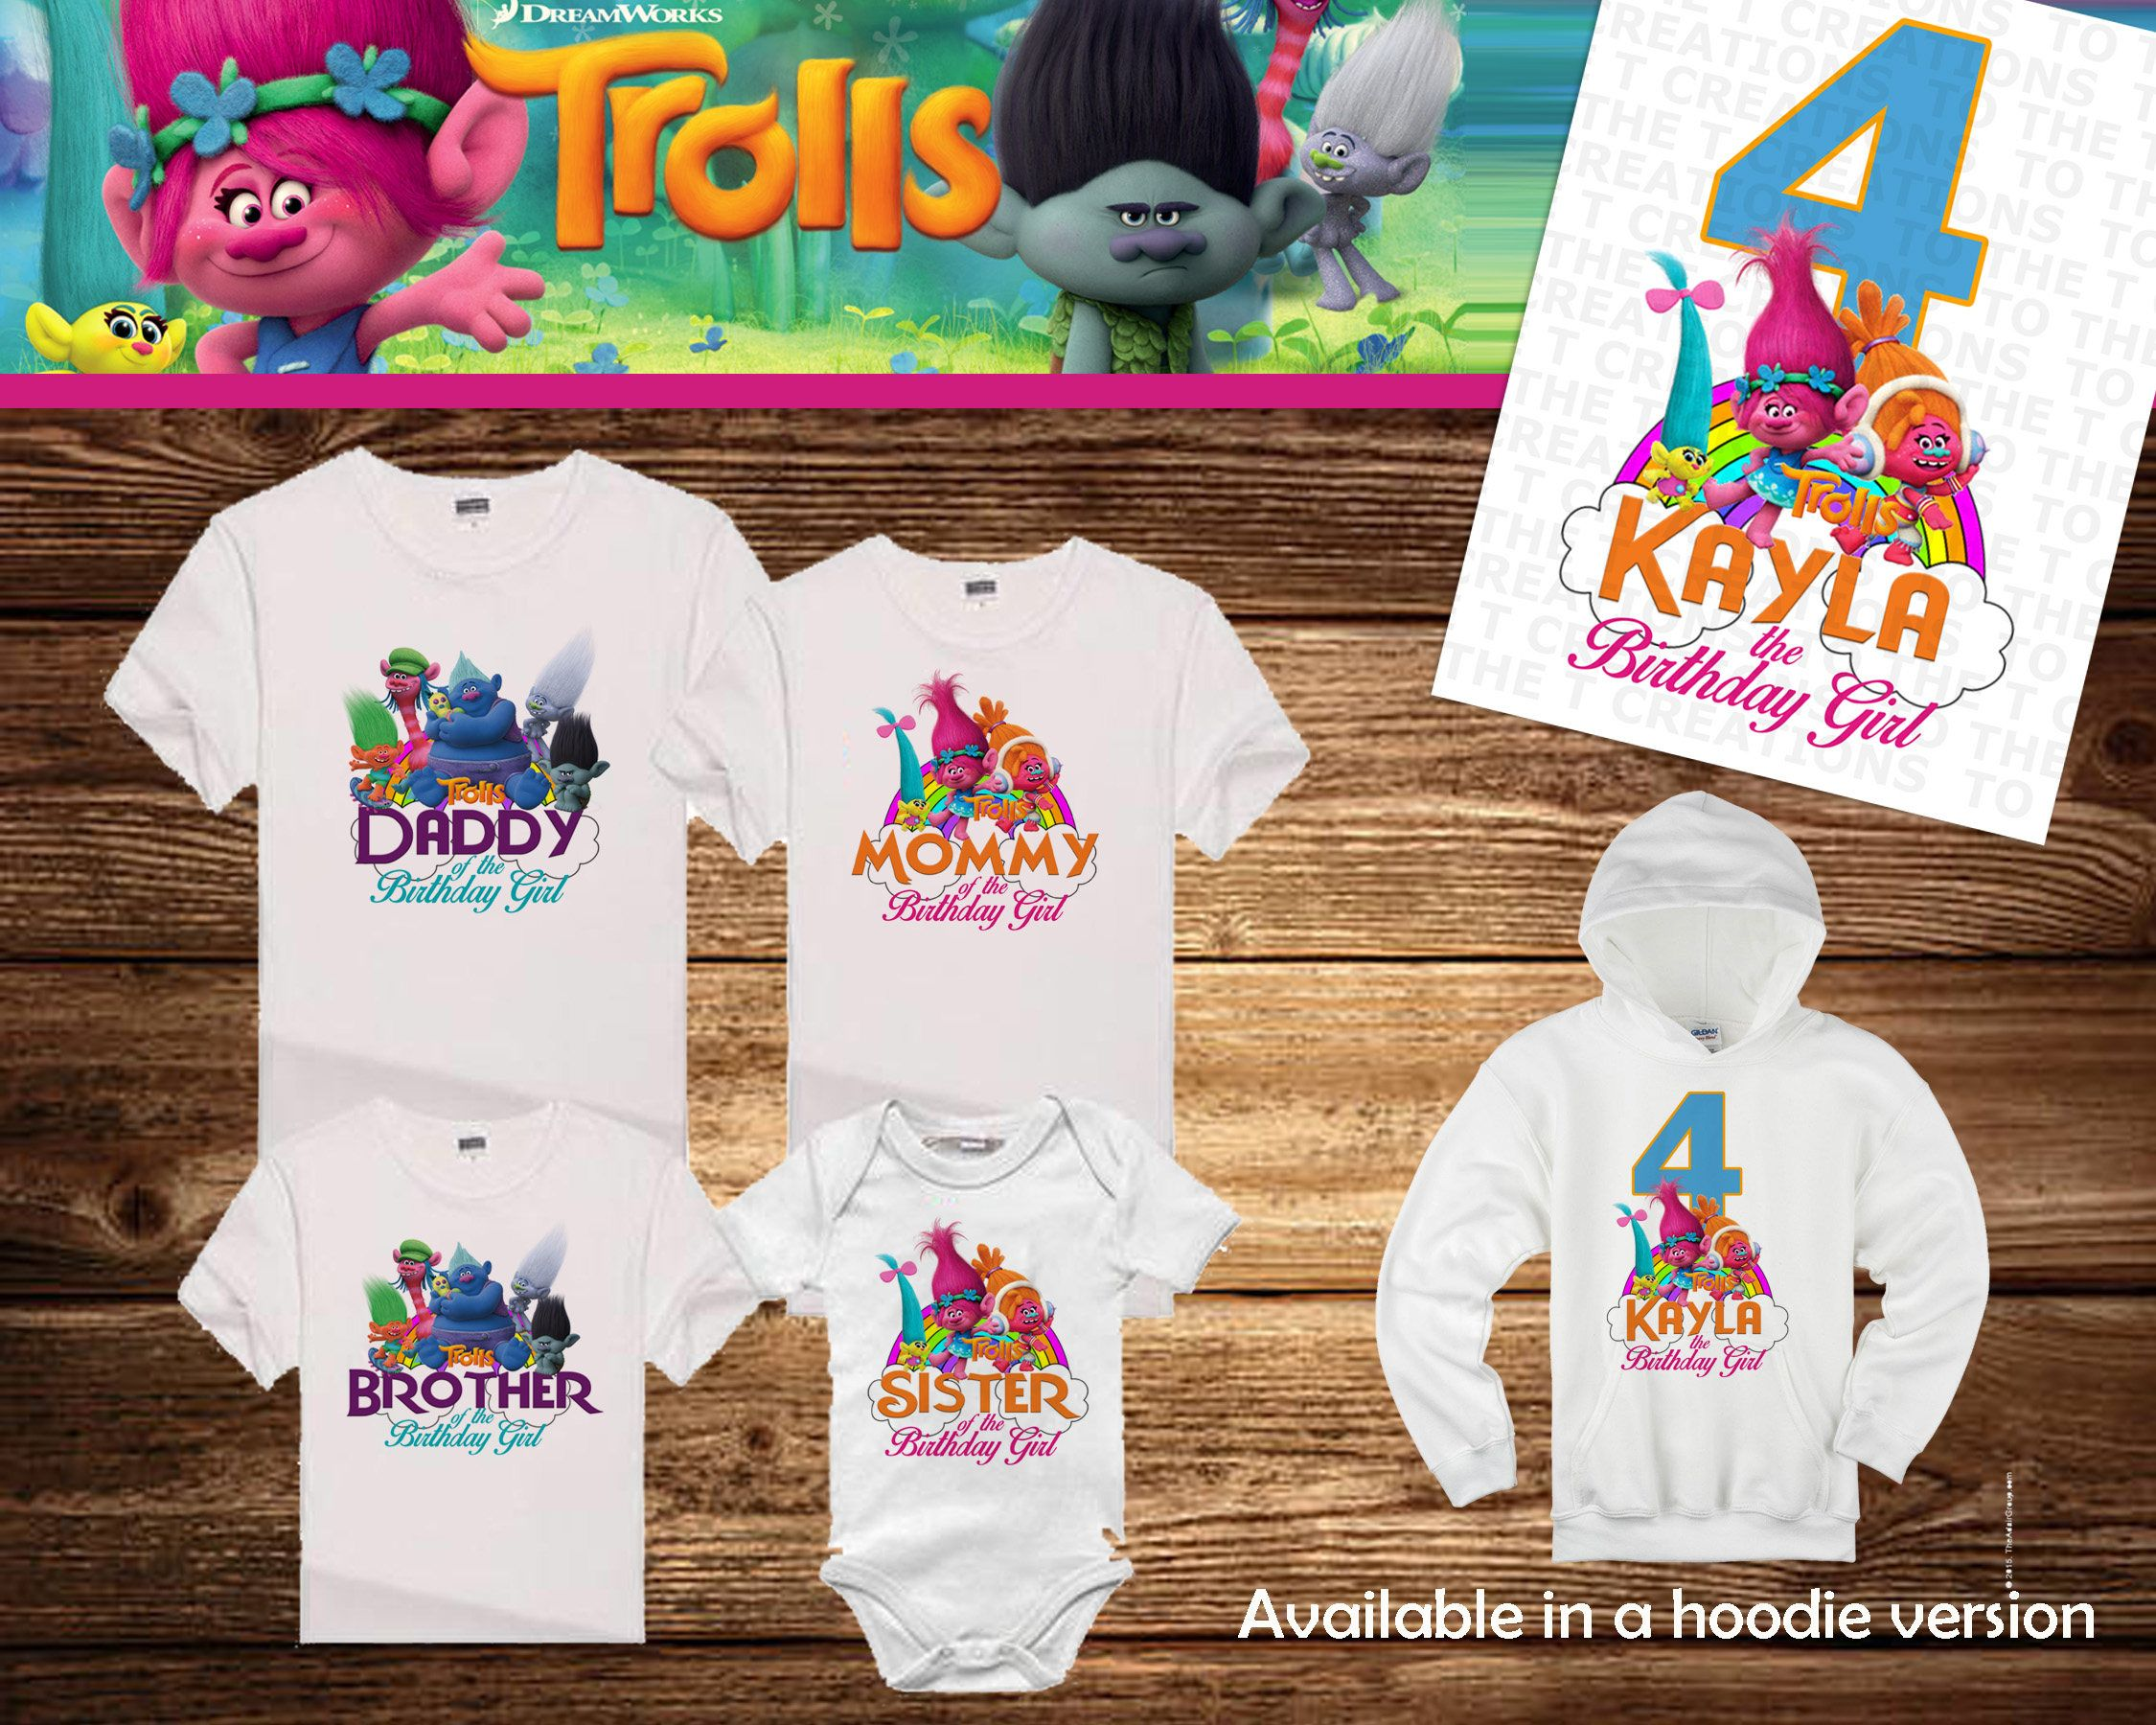 4d7a20c1c Trolls Poppy Personalized Birthday Shirt - Tshirt - Hoodie - Onesie - Mom -  Dad - Sister - Brother - Birthday